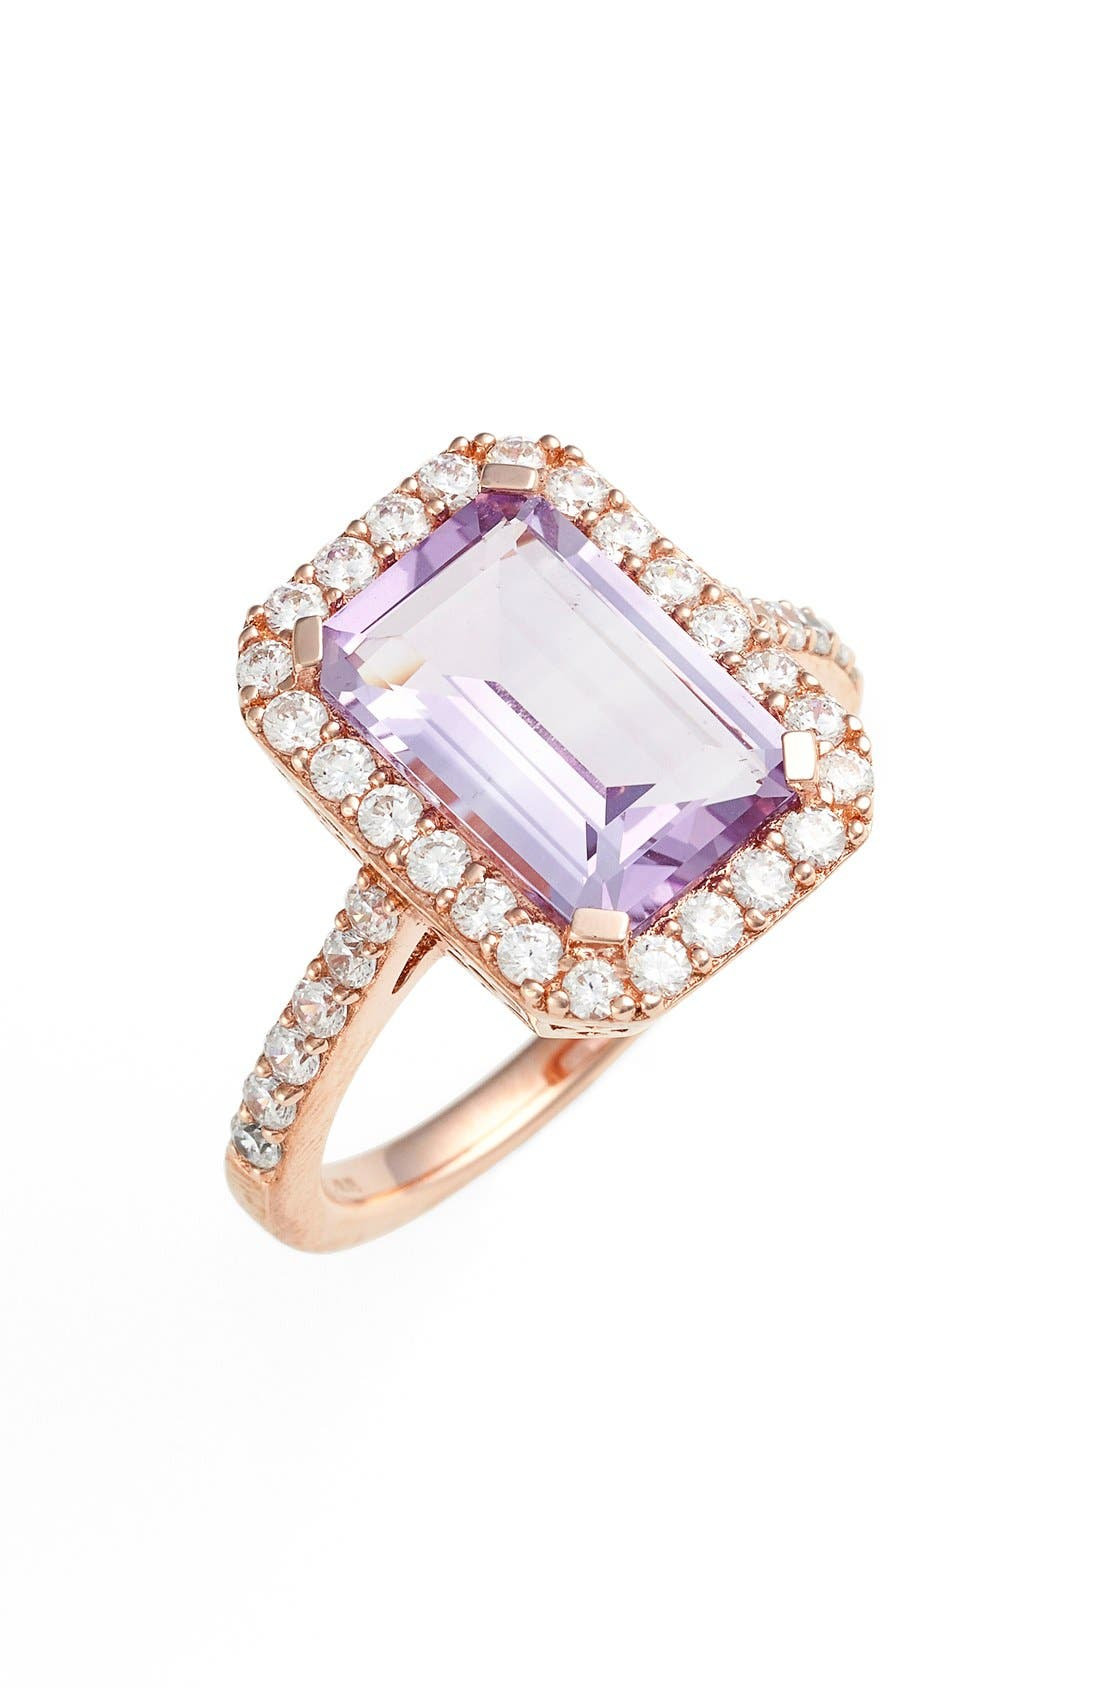 'Aria' Emerald Cut Ring,                             Main thumbnail 1, color,                             500